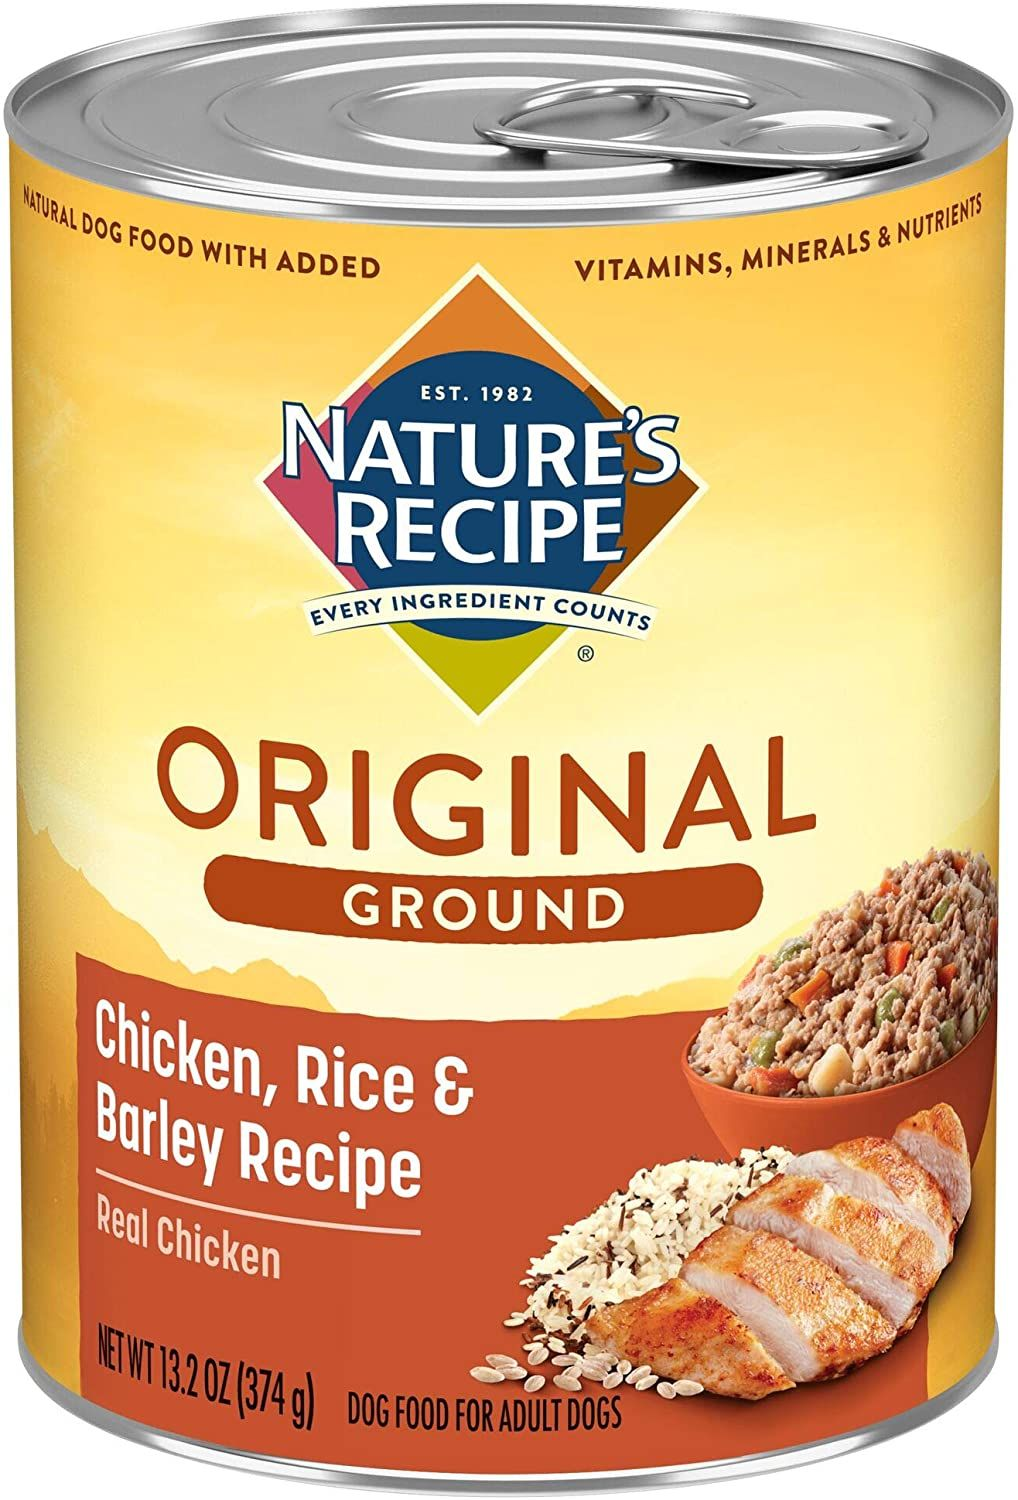 Natures Recipe Easy To Digest Wet Dog Foodchickenrice Ampbarley Recipe Ounce Canpack Of Pet Supplies Amazon Affiliate Link Clic Dog Food Recipes Food Recipes